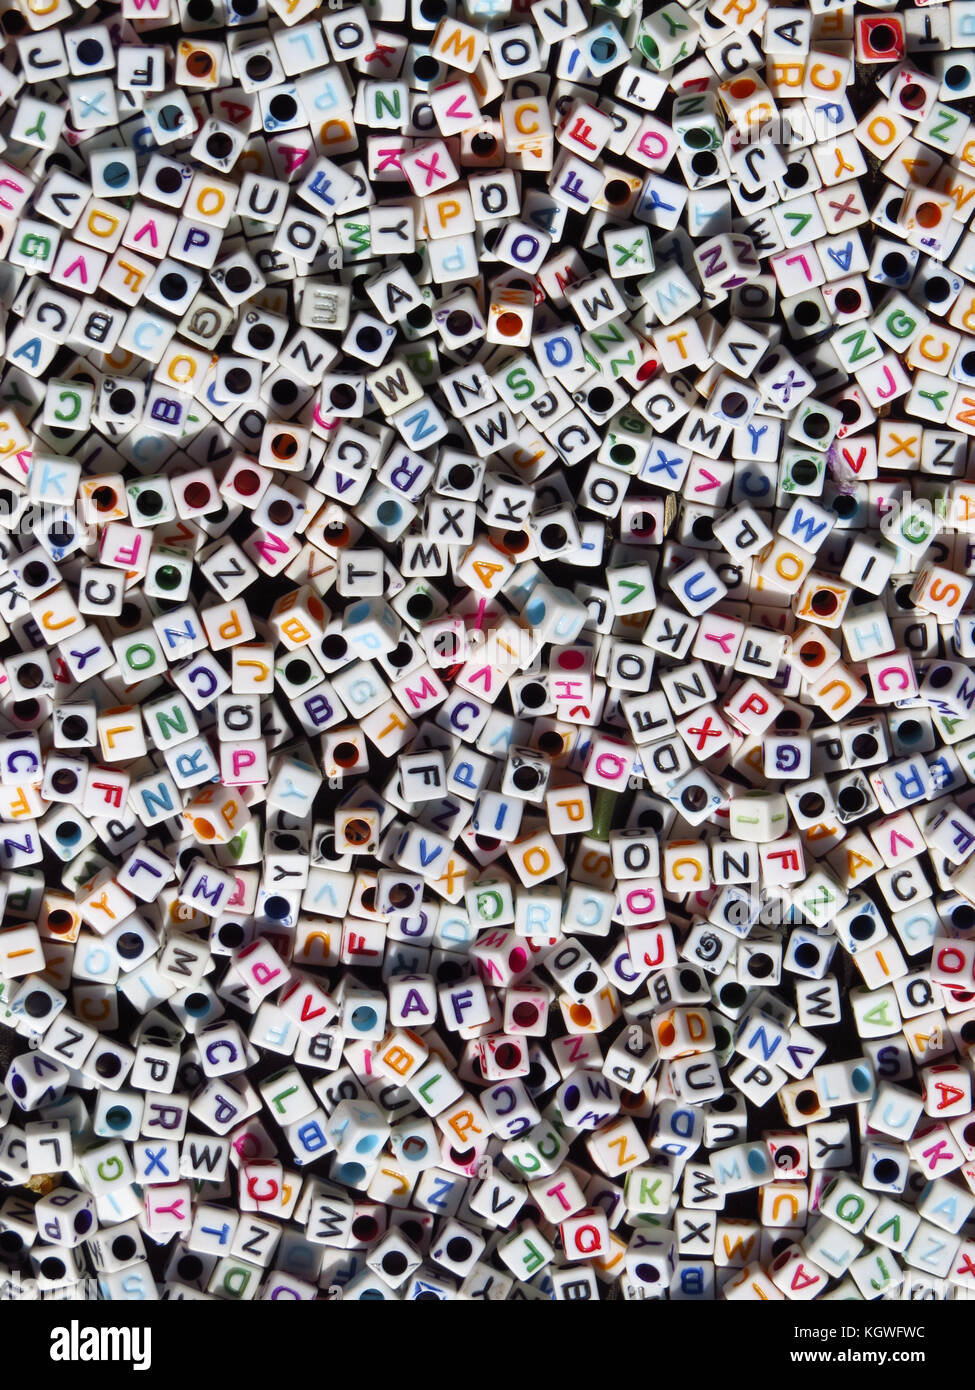 A background of beads of alphabets which are randomly arranged. - Stock Image